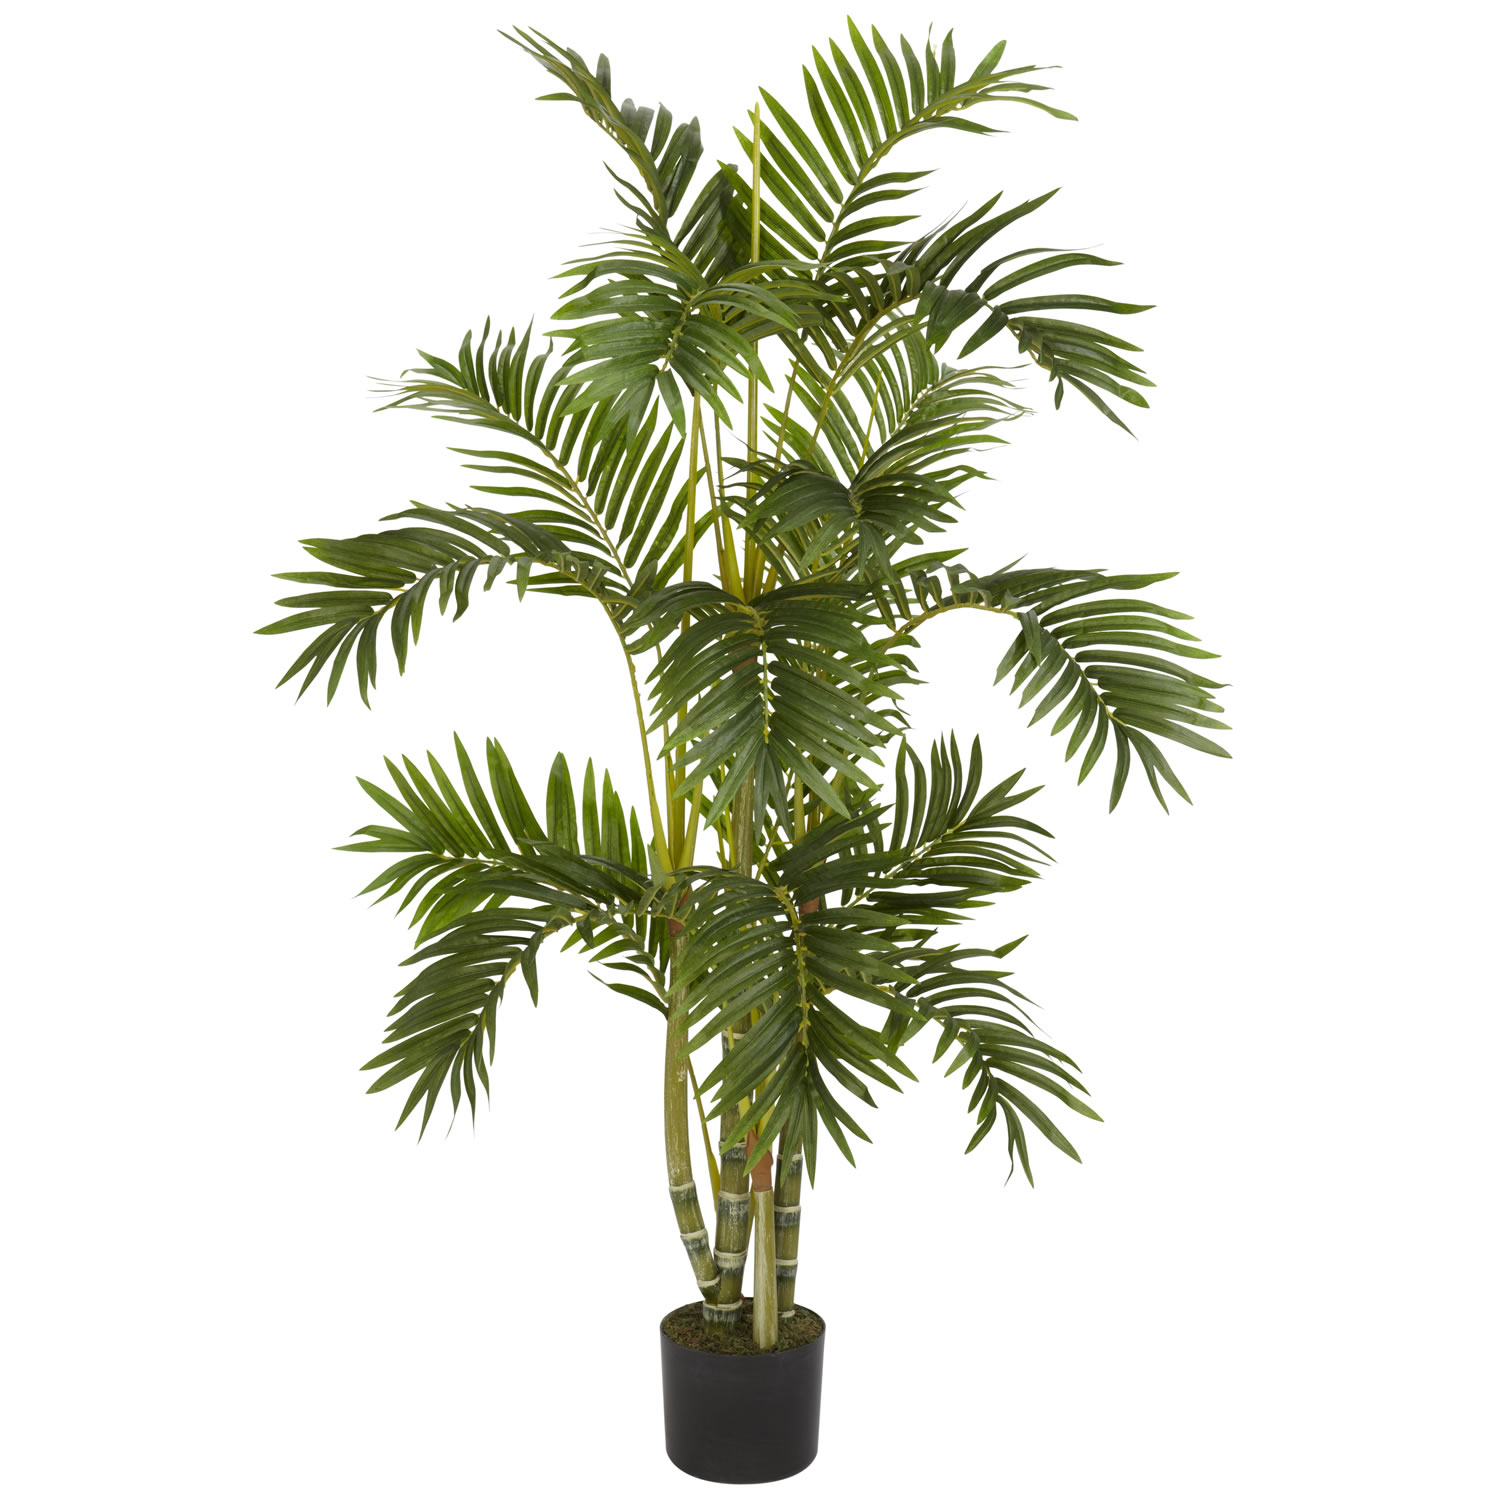 4 foot areca palm tree potted 5336 for Pictures of areca palm plants